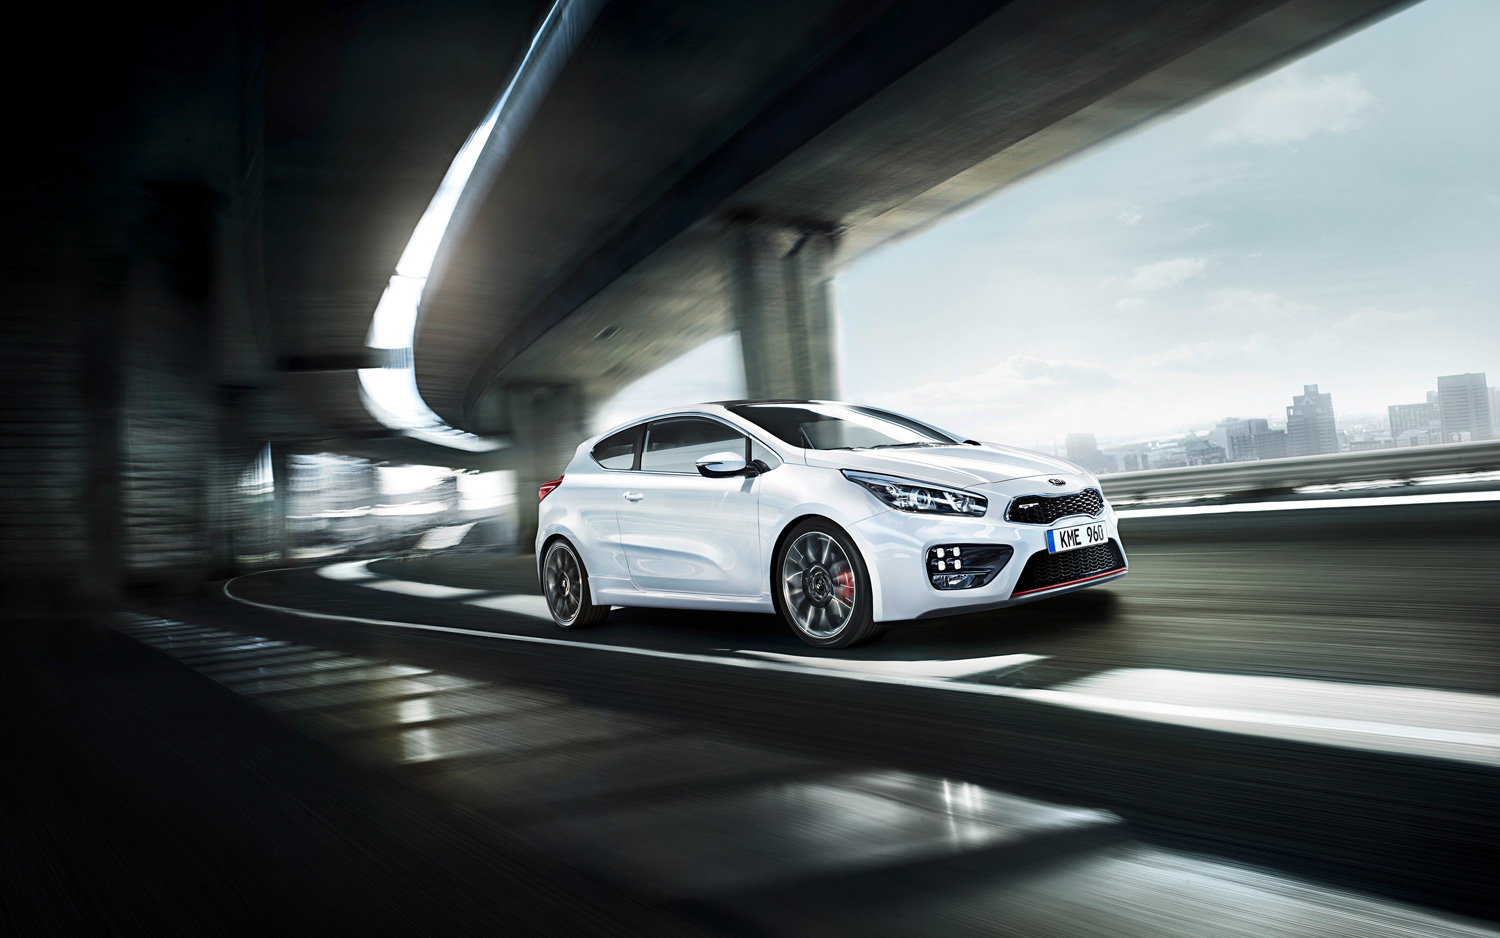 Kia-Pro-ceed-GT-hatchback-motion-view Photo on March 6, 2013 ...